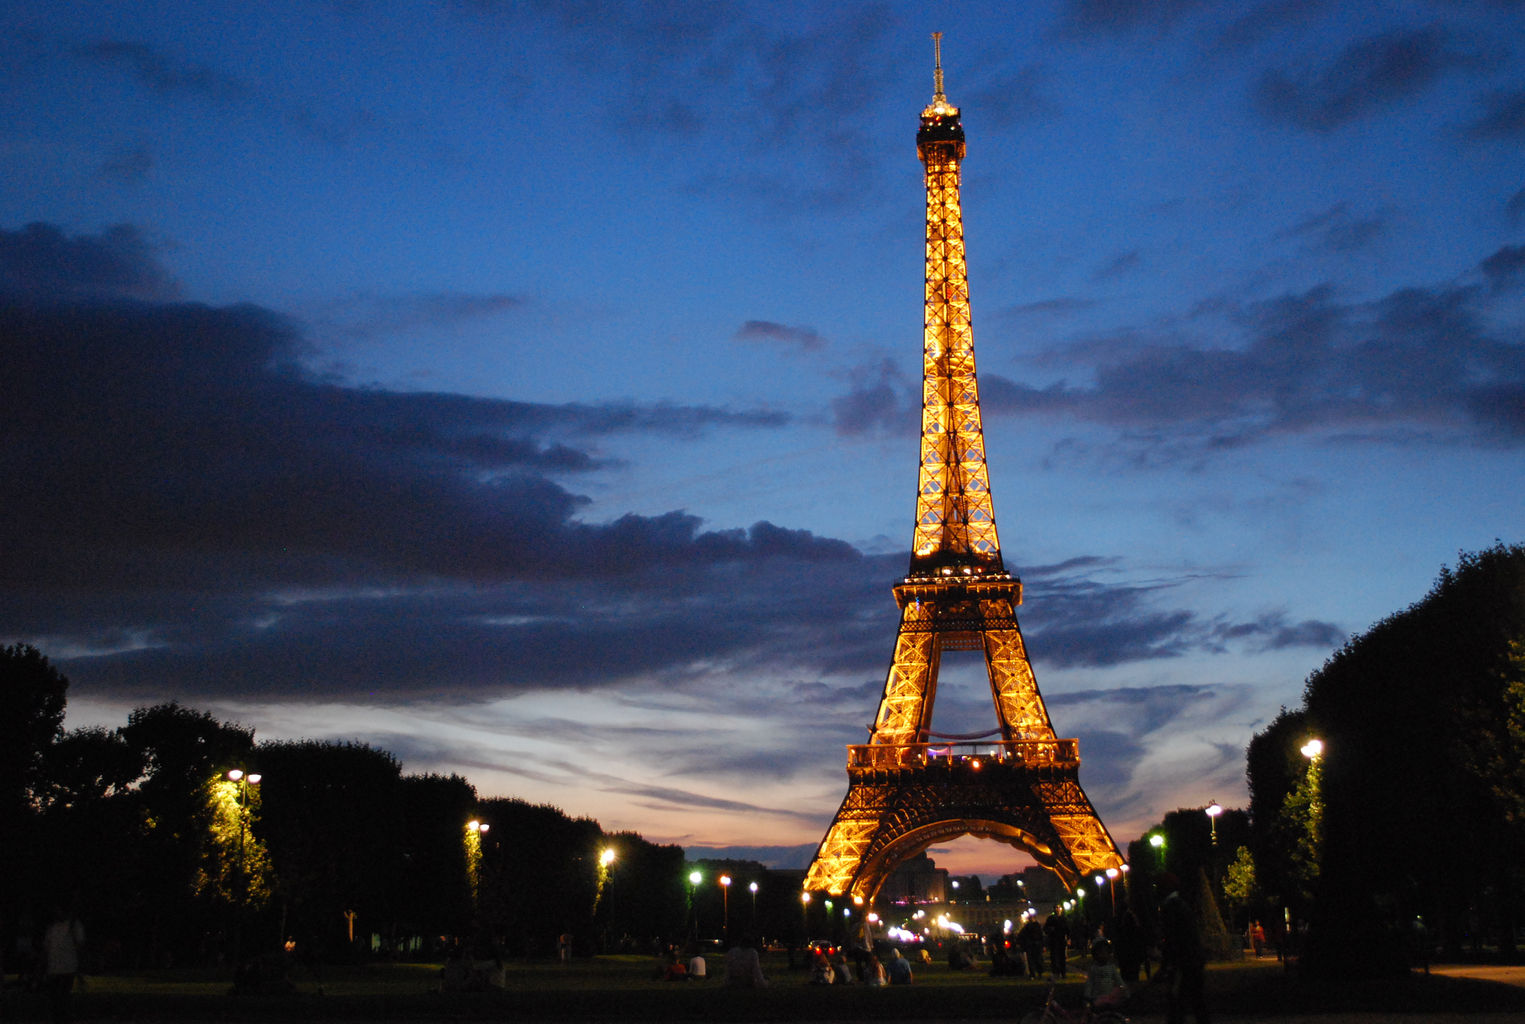 Fully lit up Eiffel Tower in Paris, France at night time